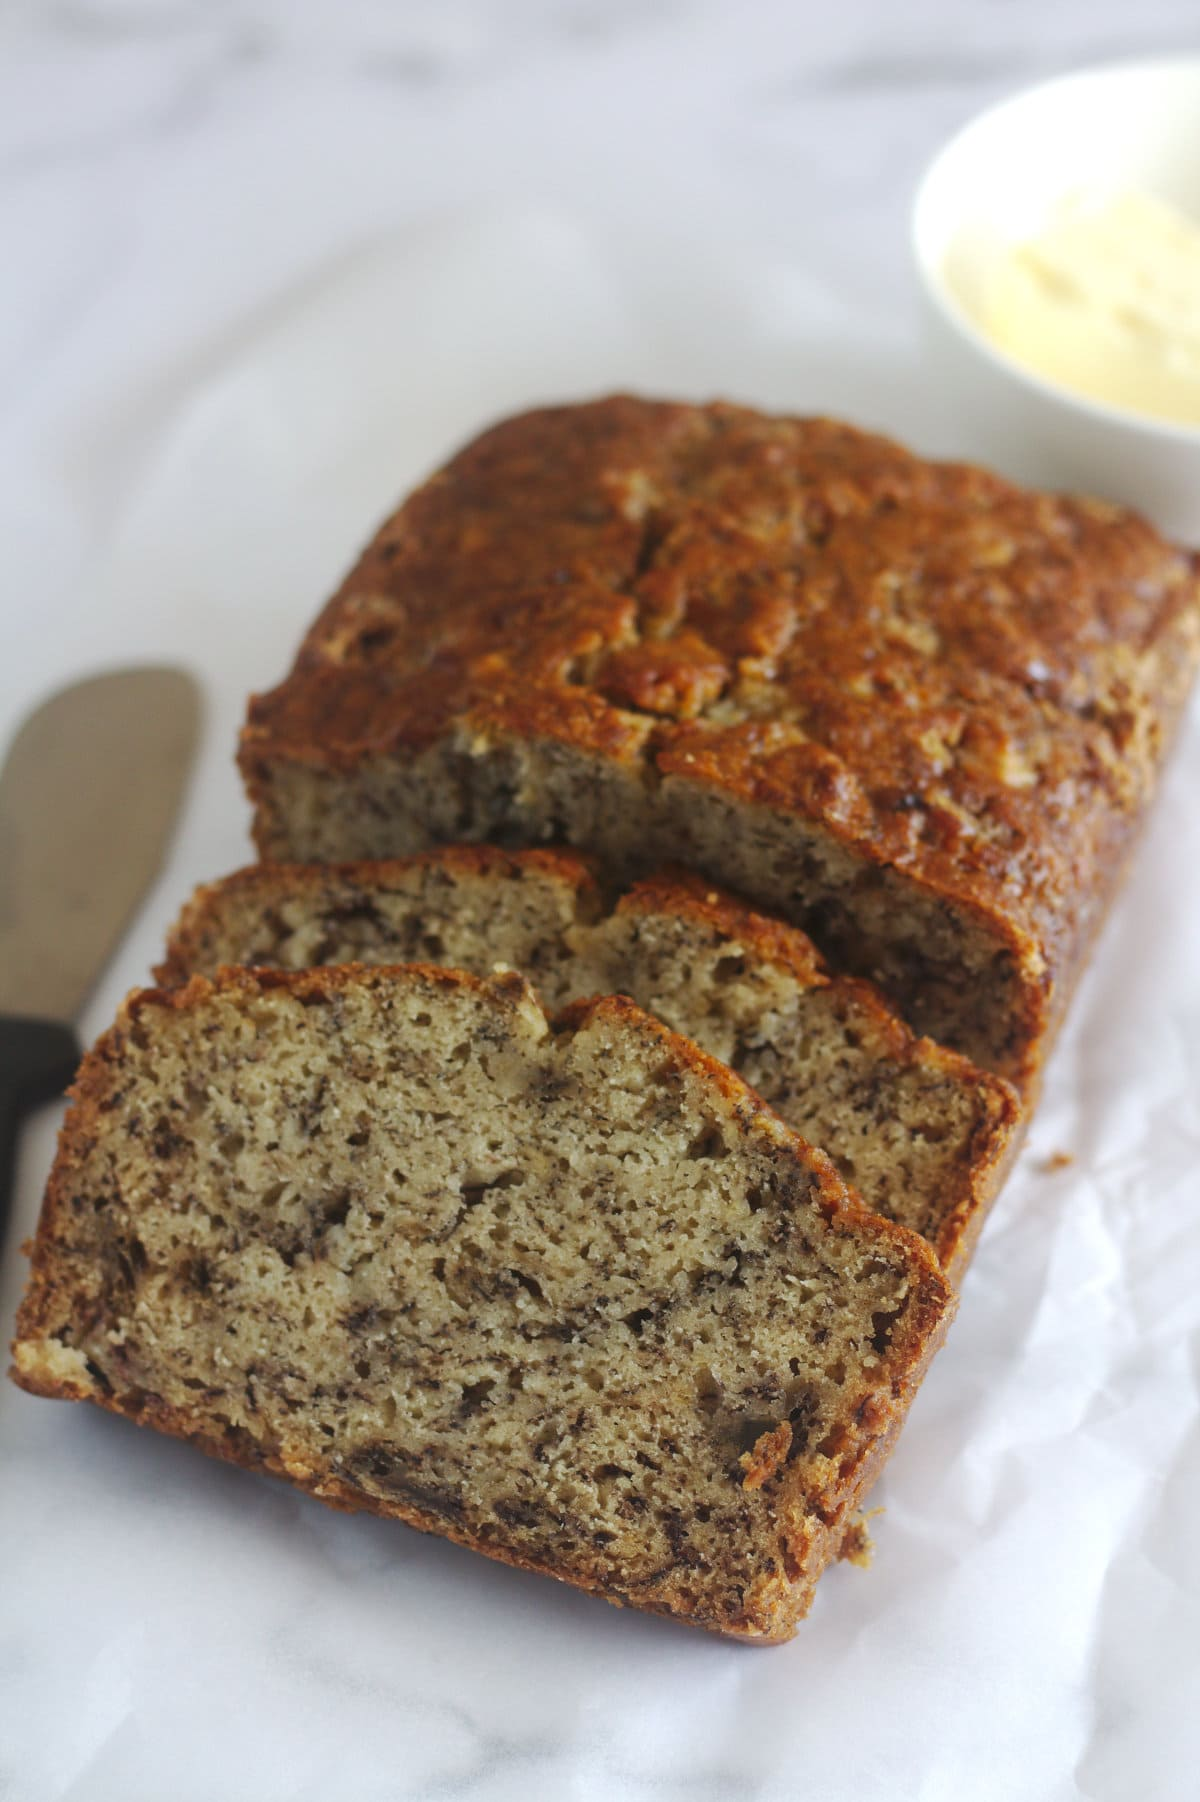 Banana bread with some slices cut from it.  A bowl with butter sits beside it, and a spreading knife on is on the other side.